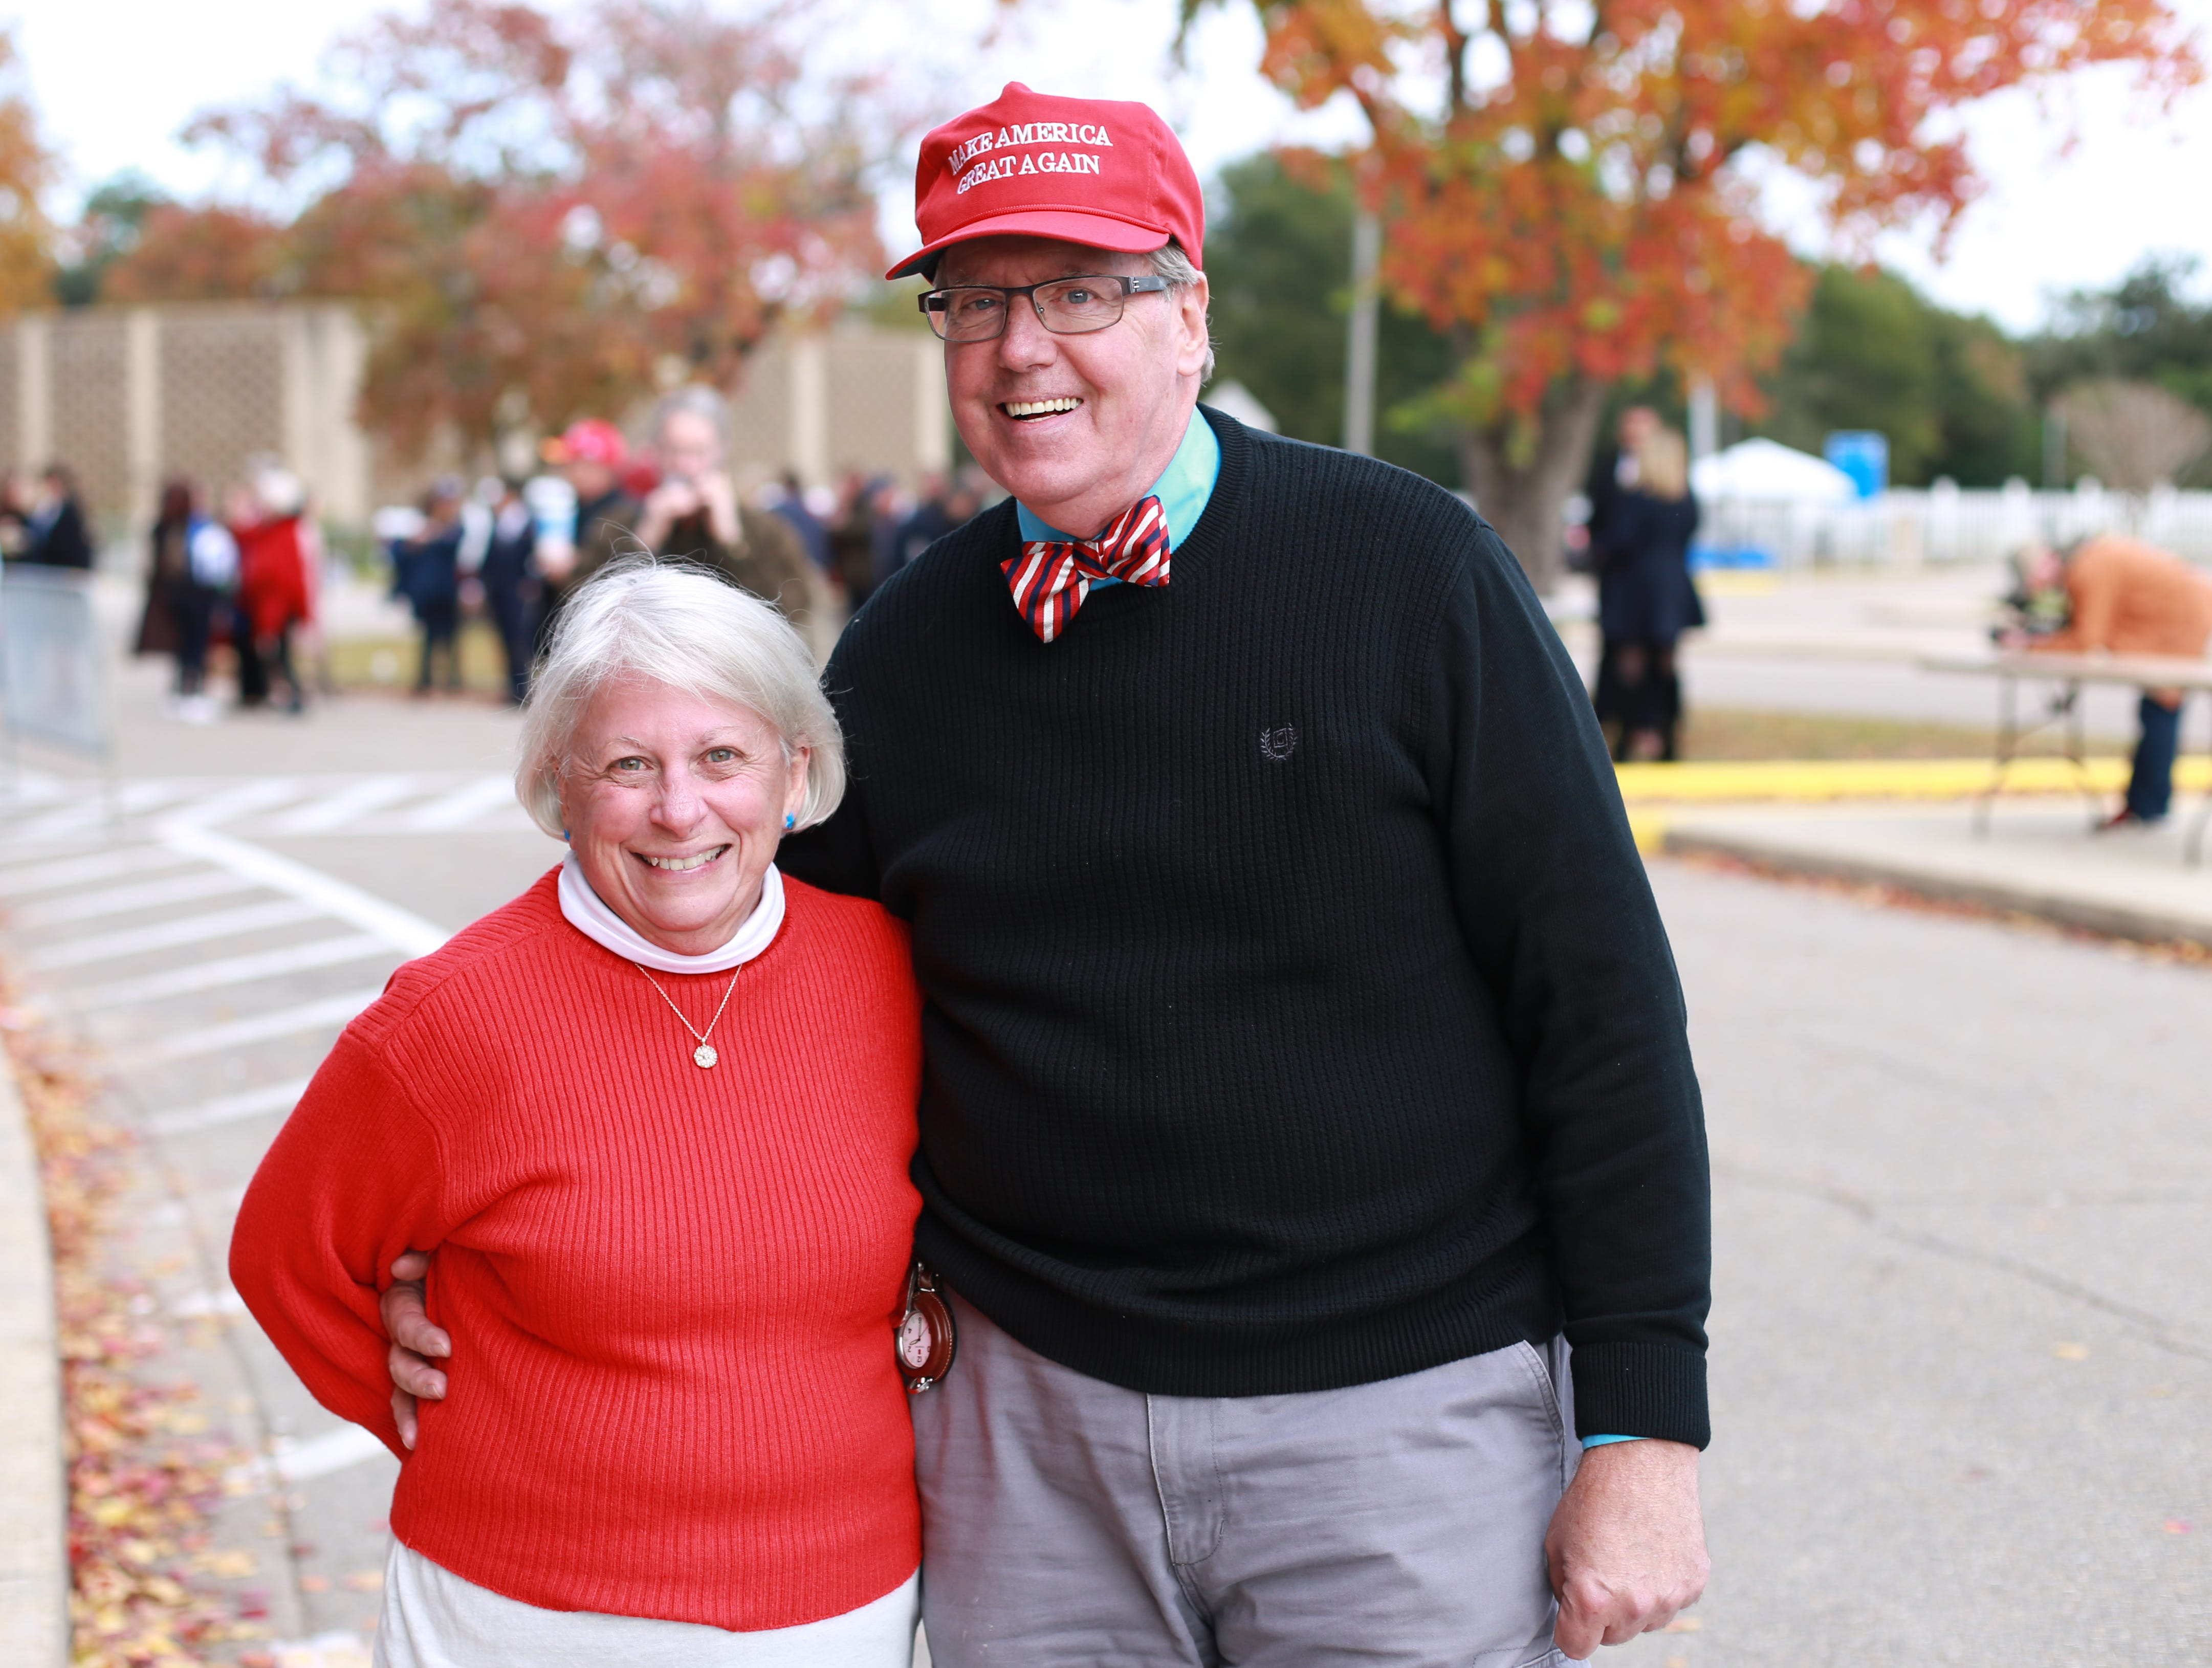 Virginia and James Olander of Bay St. Louis, Miss., are part of a crowd waiting see President Donald Trump speak at a rally at the Mississippi Coast Coliseum and Convention Center on Nov. 26, 2018, in support of U.S. Senate candidate Cindy Hyde-Smith.